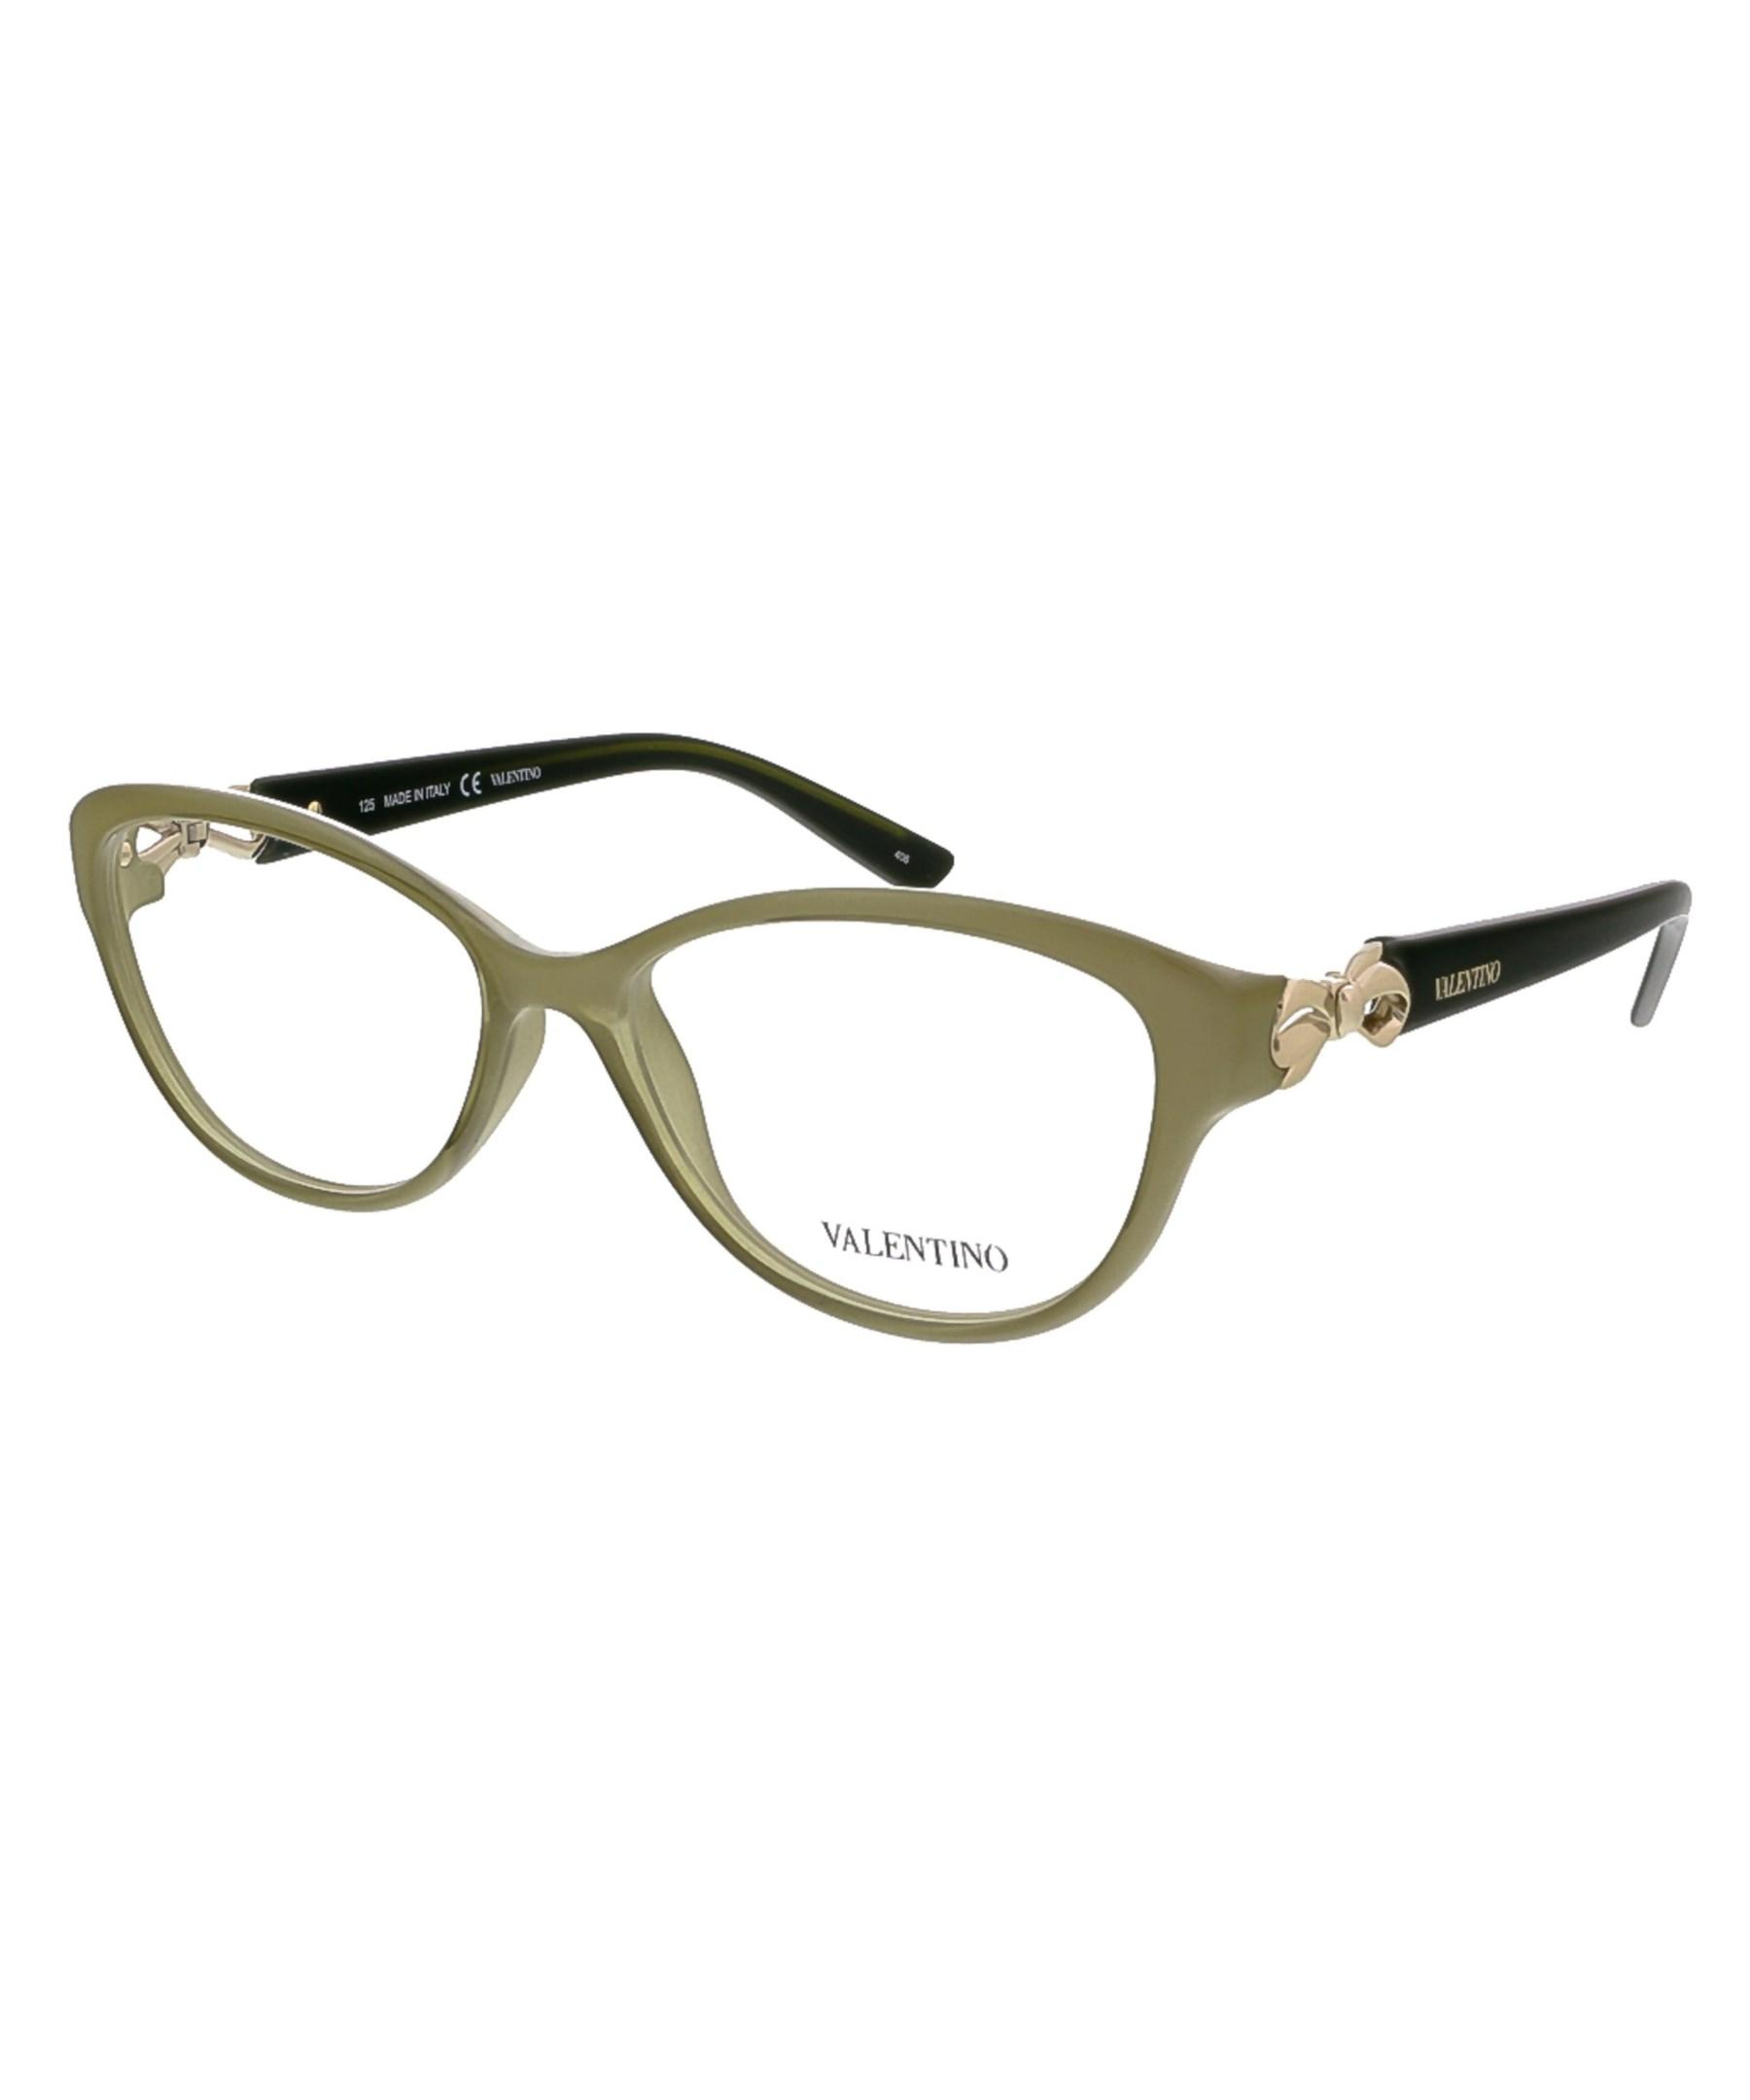 Valentino V2672 319 Sage Oval Eyewear in Green Lyst